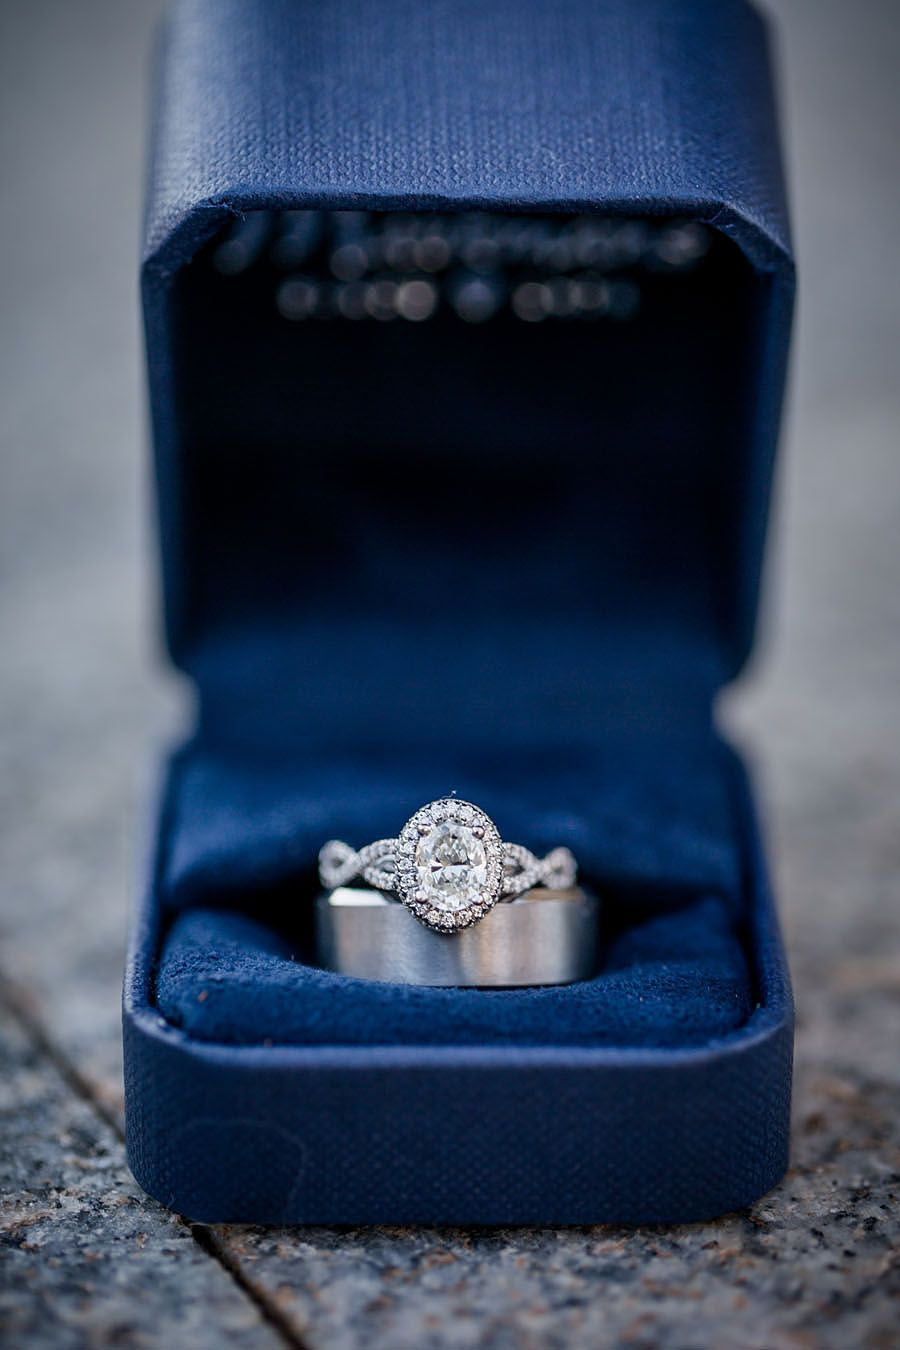 Wedding ring detail pictures at Lee University Chapel by Amanda May Photos